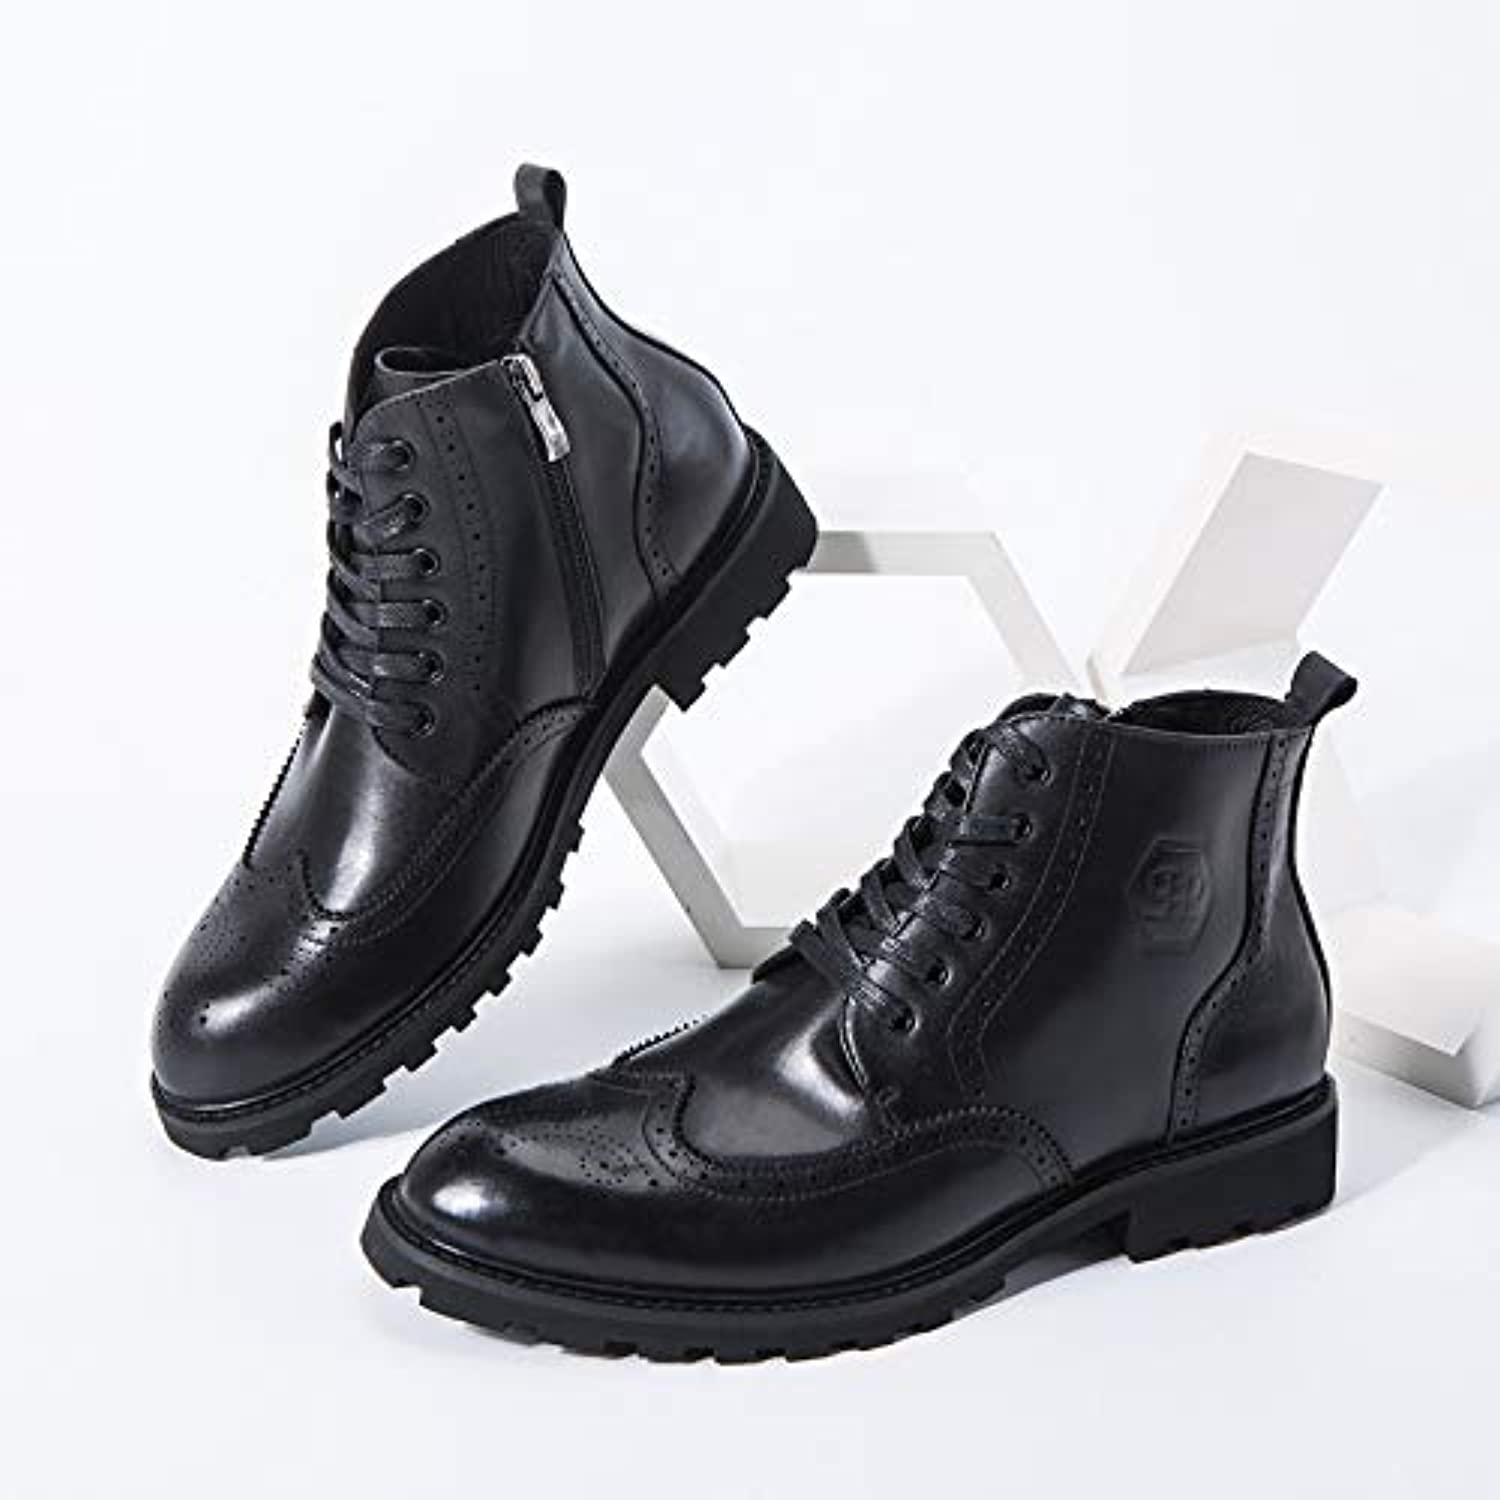 LOVDRAM Boots Men's Autumn And Winter New Leather Bullock Carved Men'S Boots Martin Boots Side Zipper Casual Men'S shoes